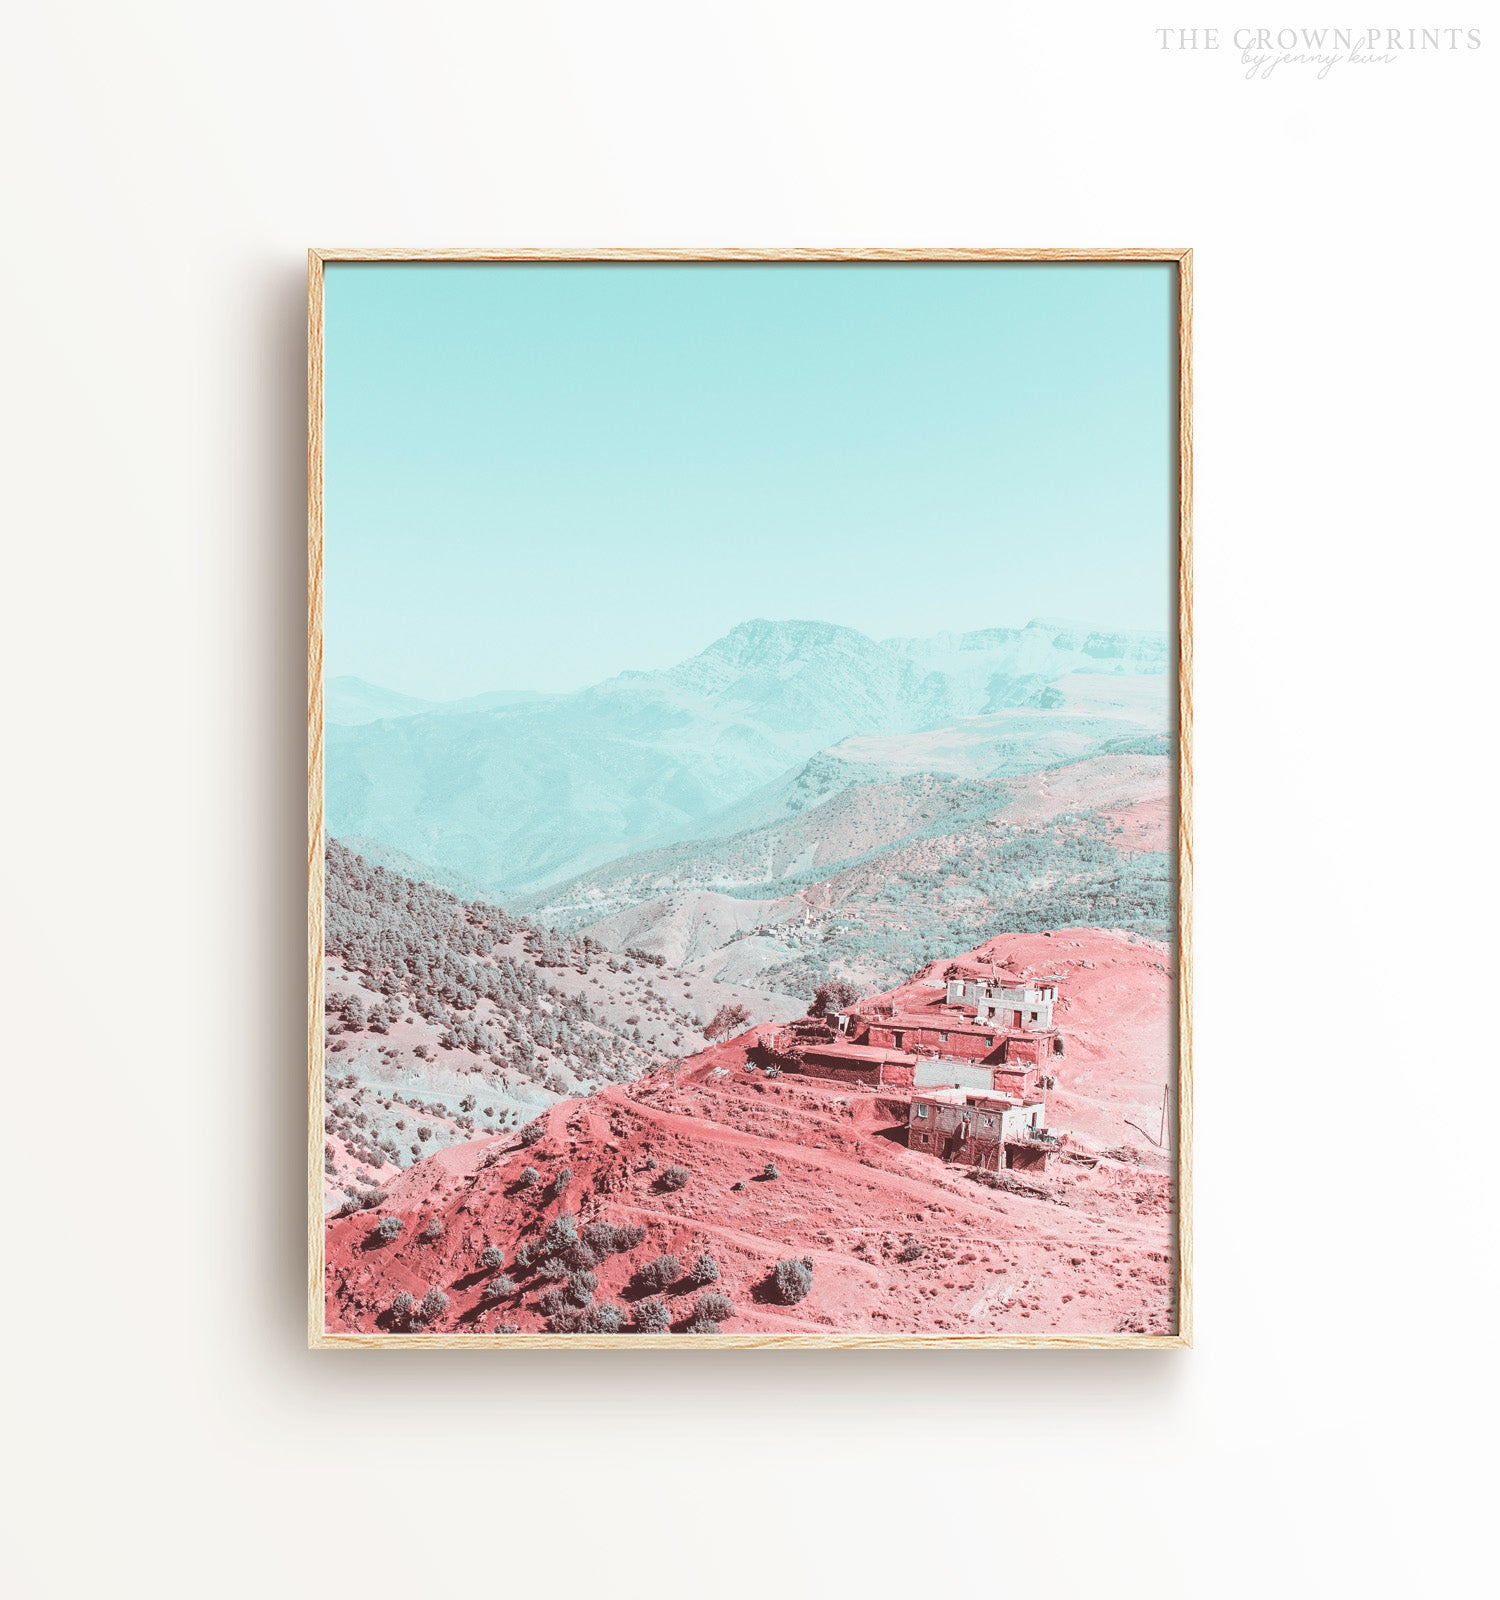 Scenes from Morocco No. 2 - Atlas Mountains Printable Art